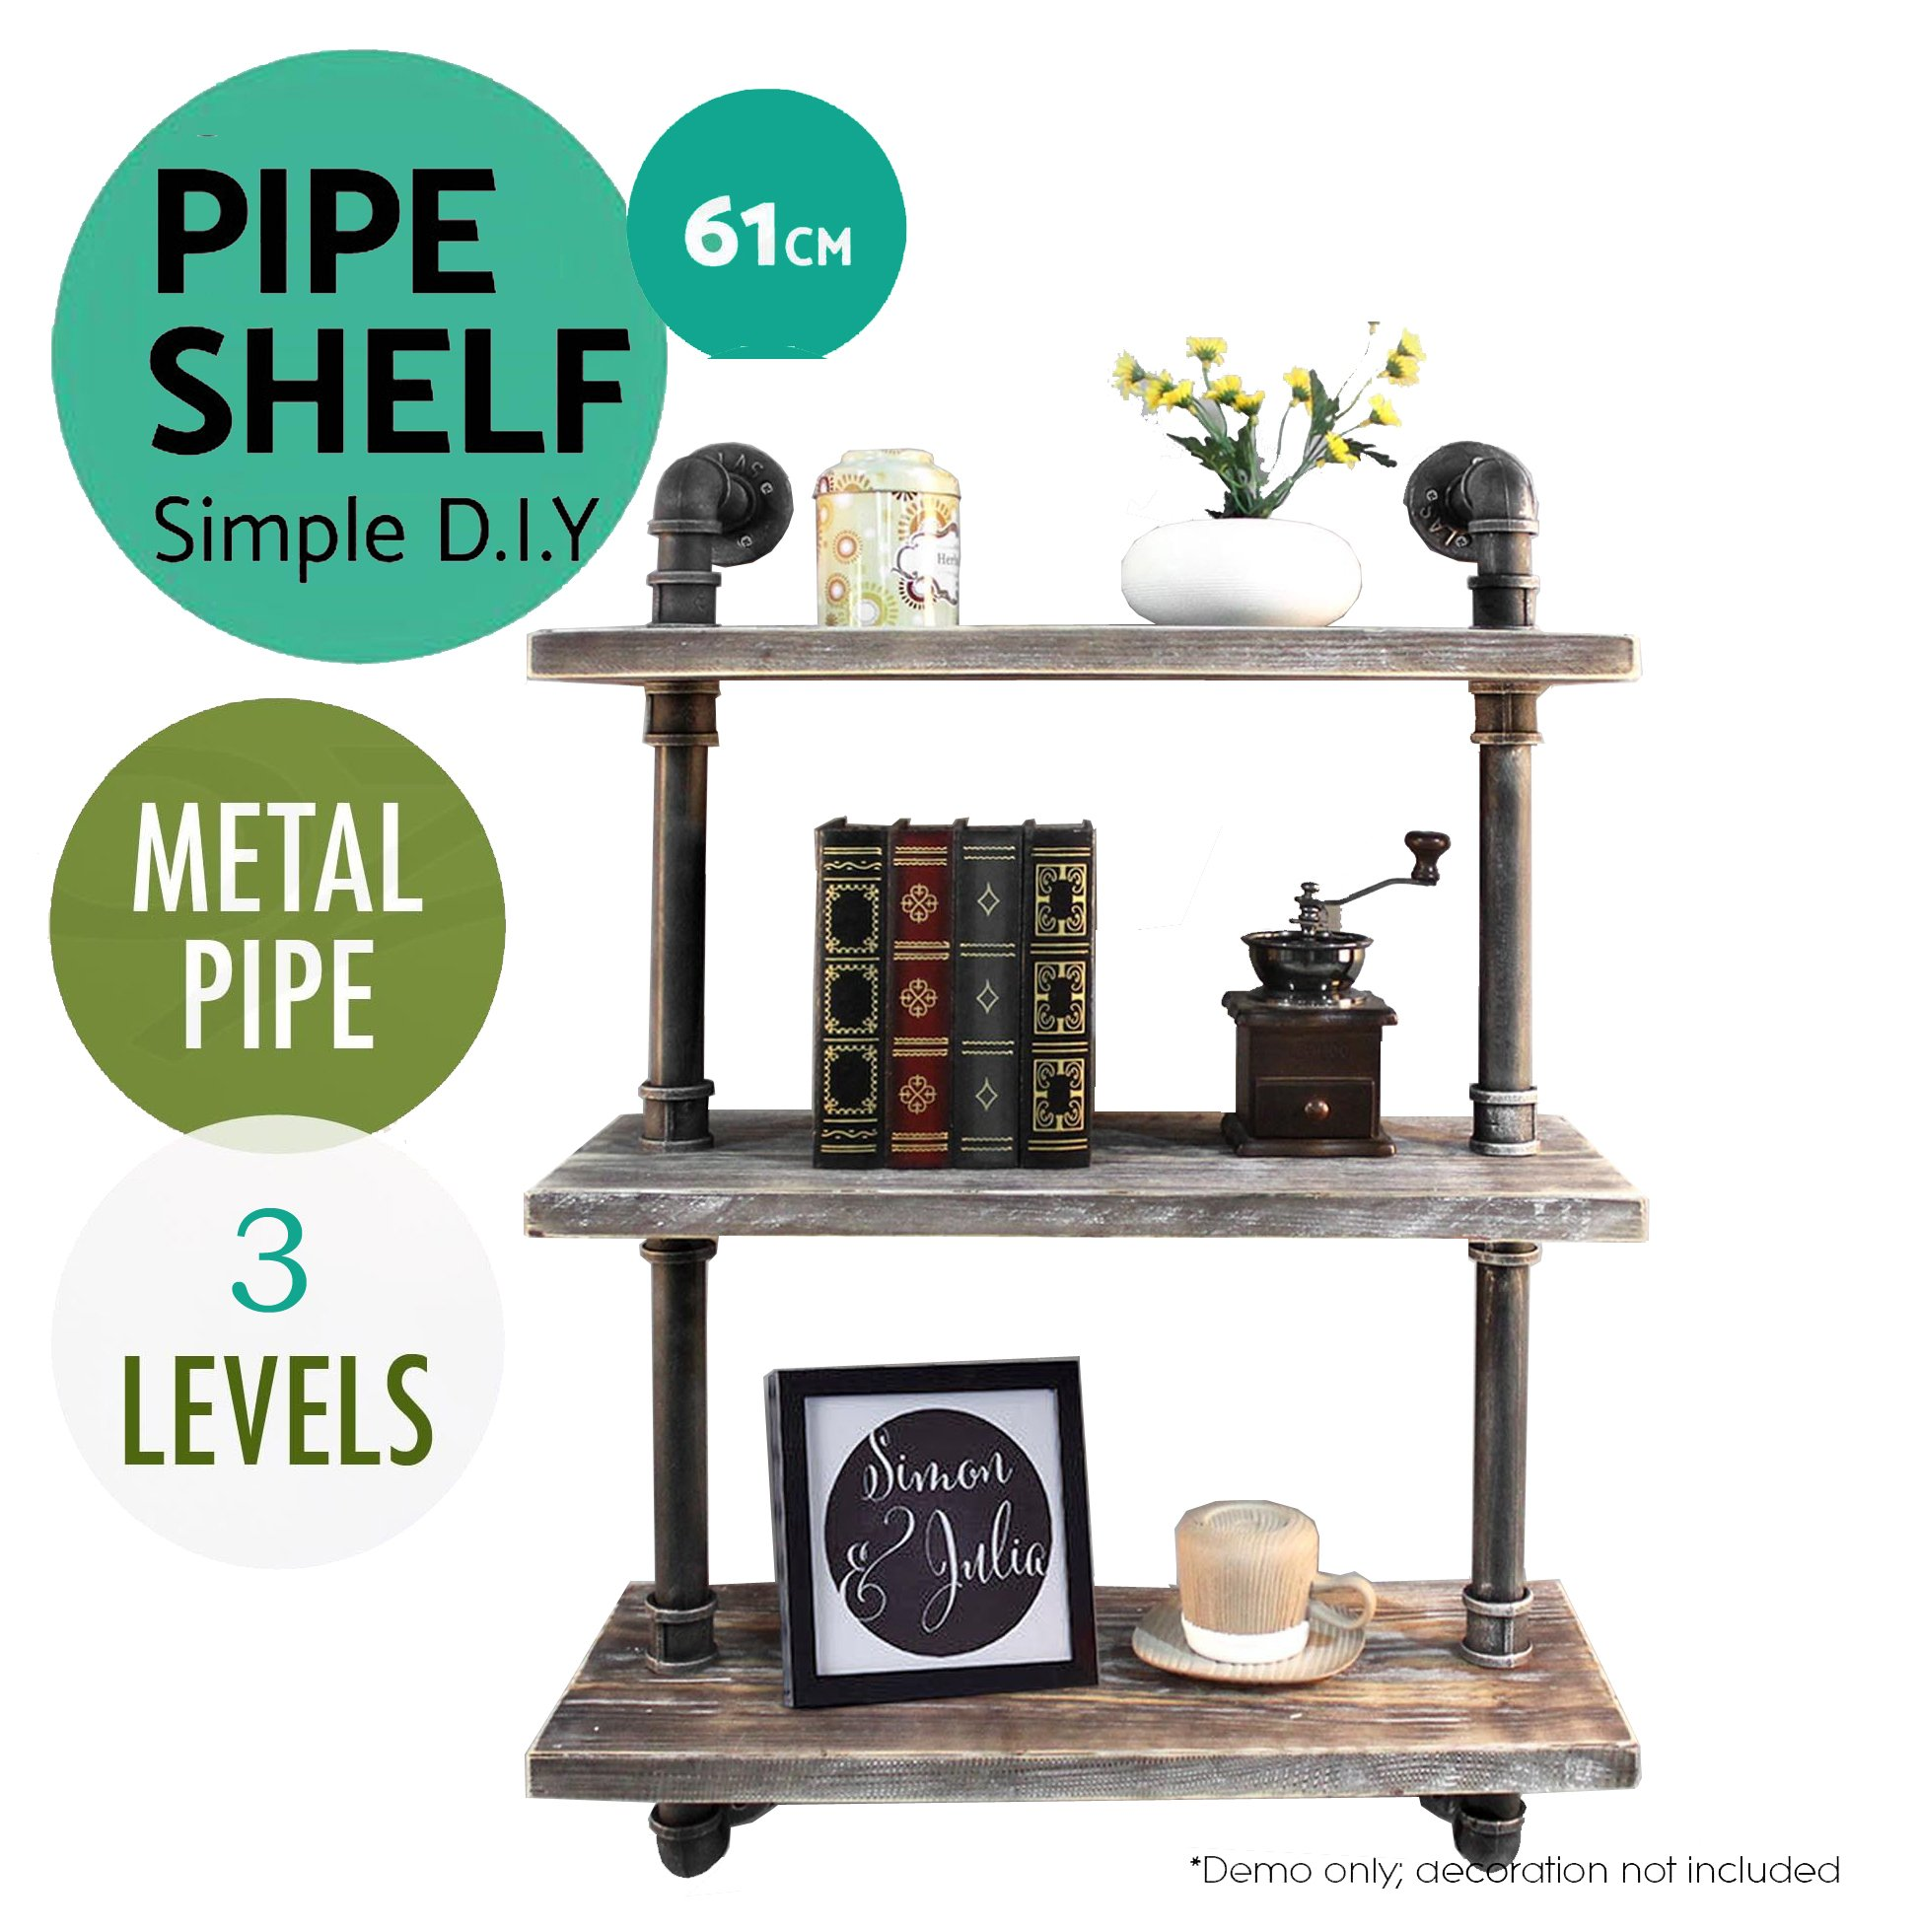 3e98f2fc045 Diwhy Industrial Rustic Modern Wood Ladder Pipe Wall Shelf 6 Layer Pipe  Design Bookshelf DIY Shelving